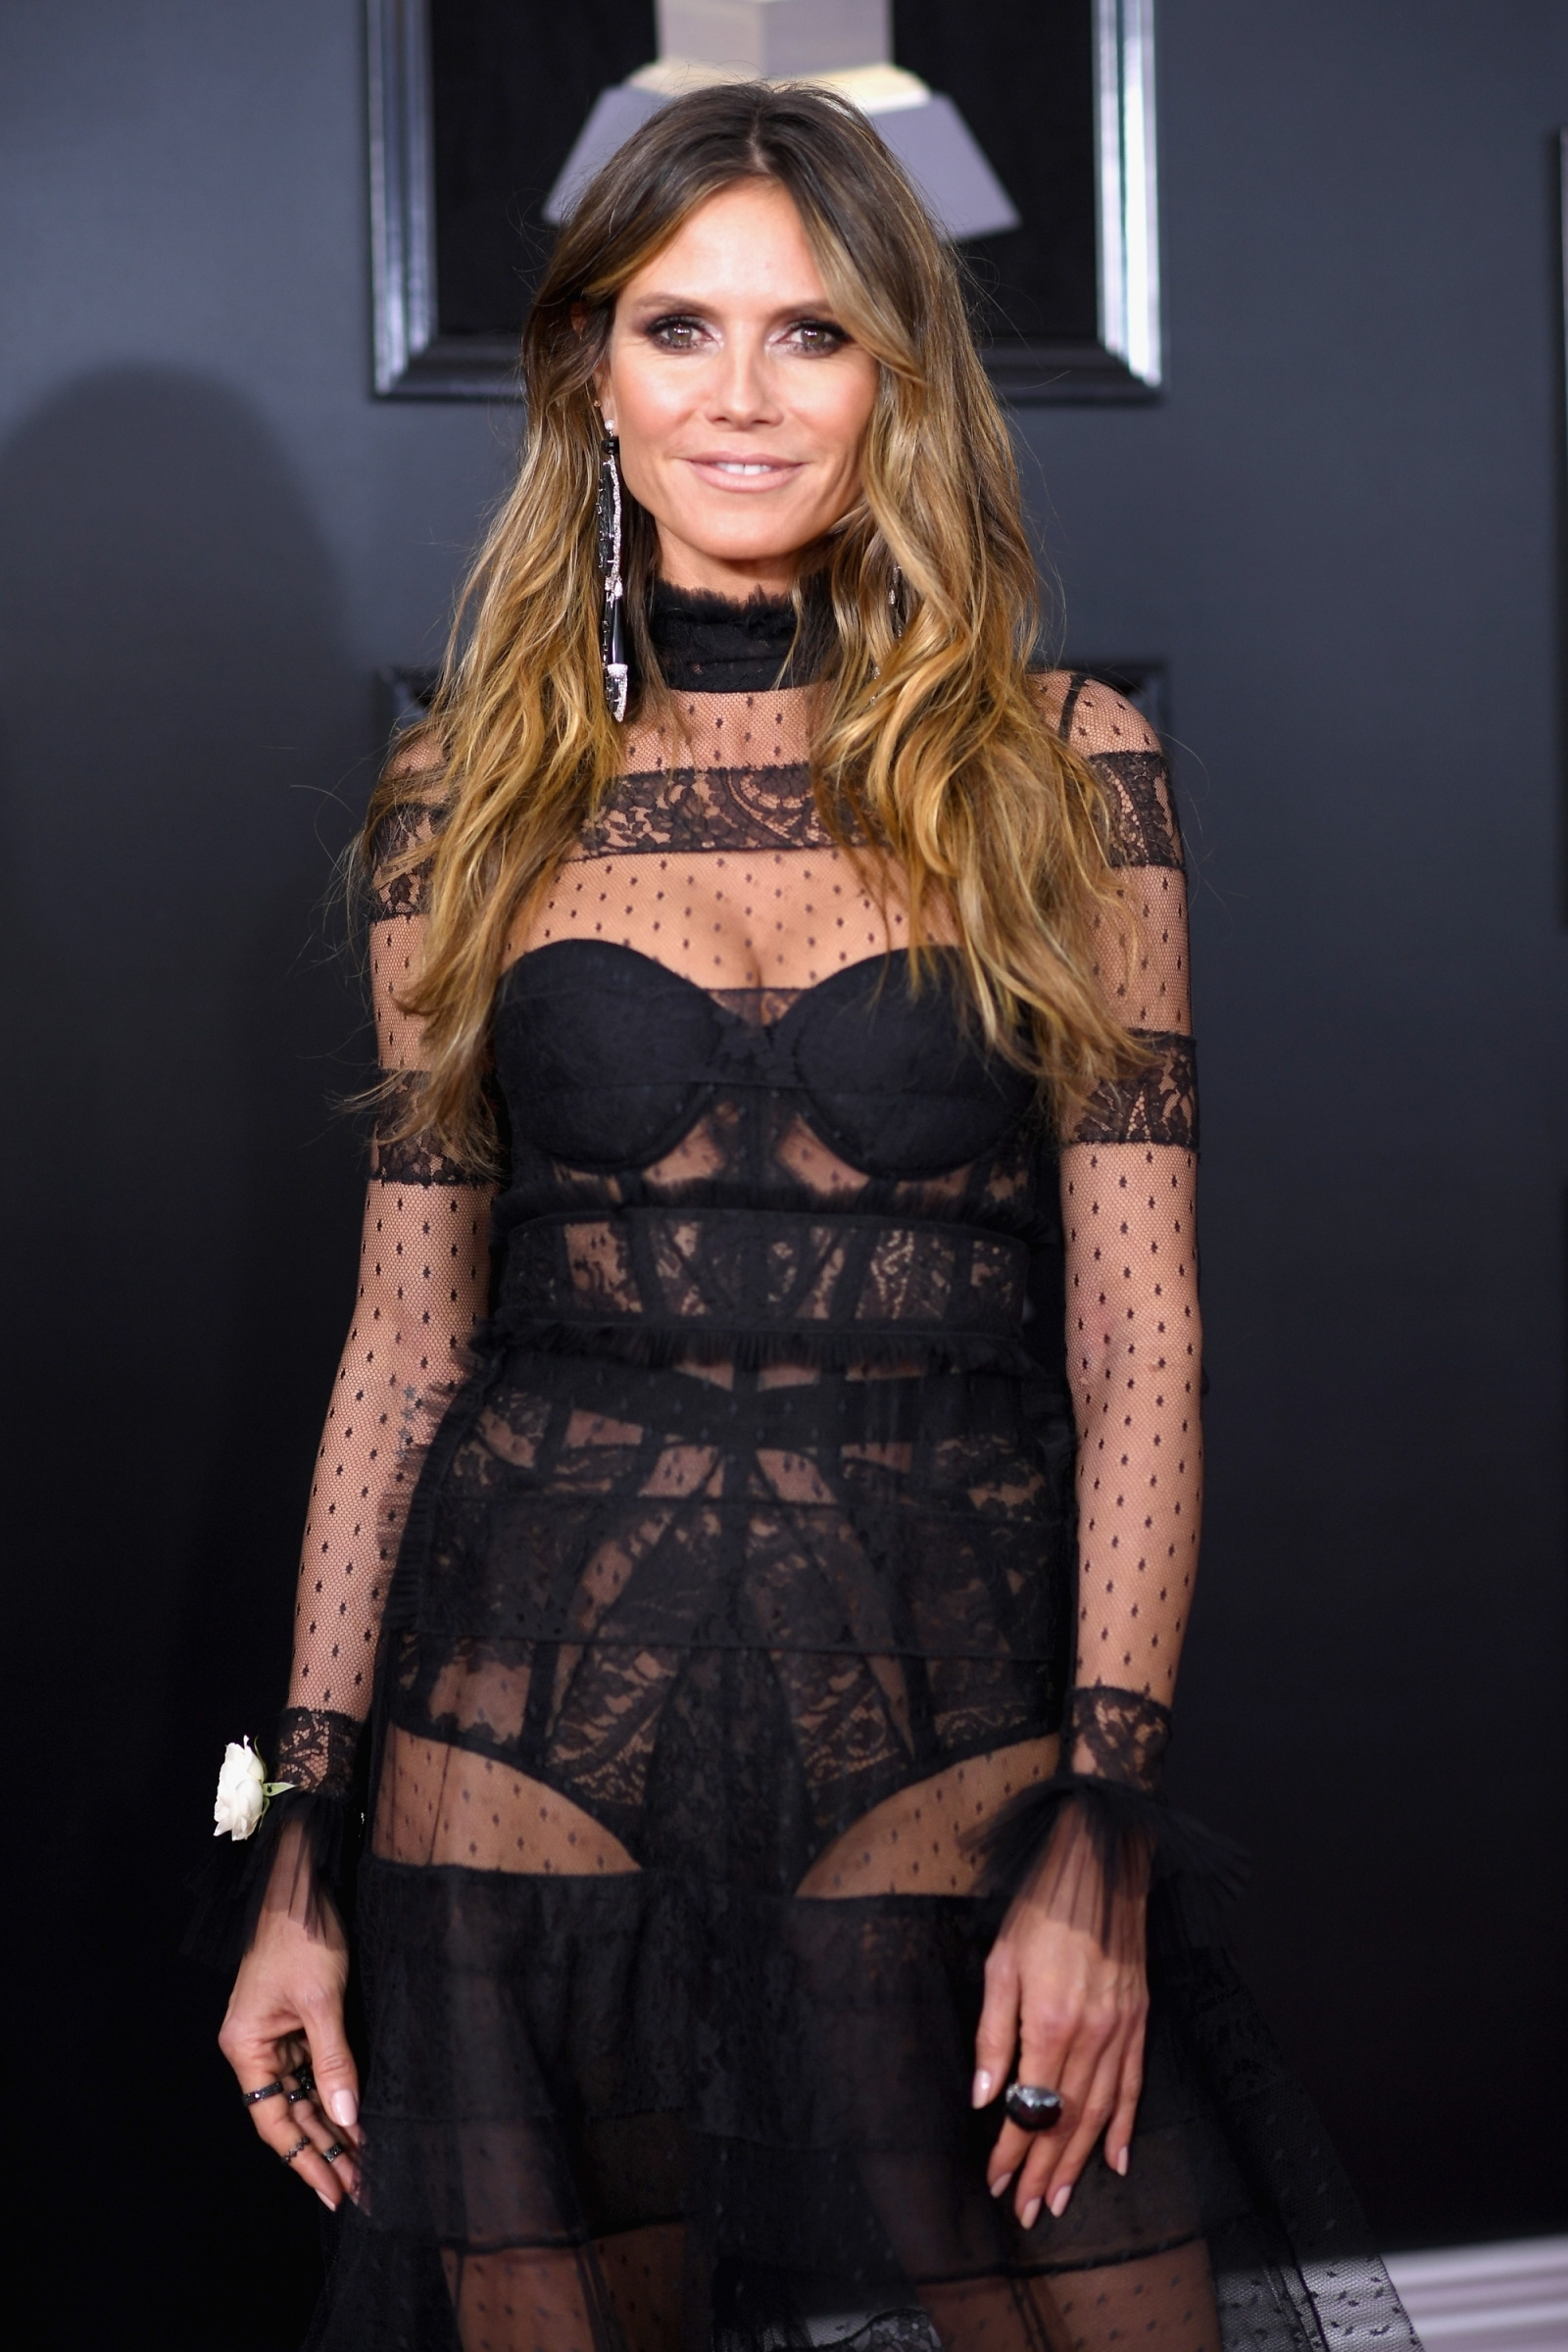 Heidi Klum Stuns In See Through Dress At The Grammys